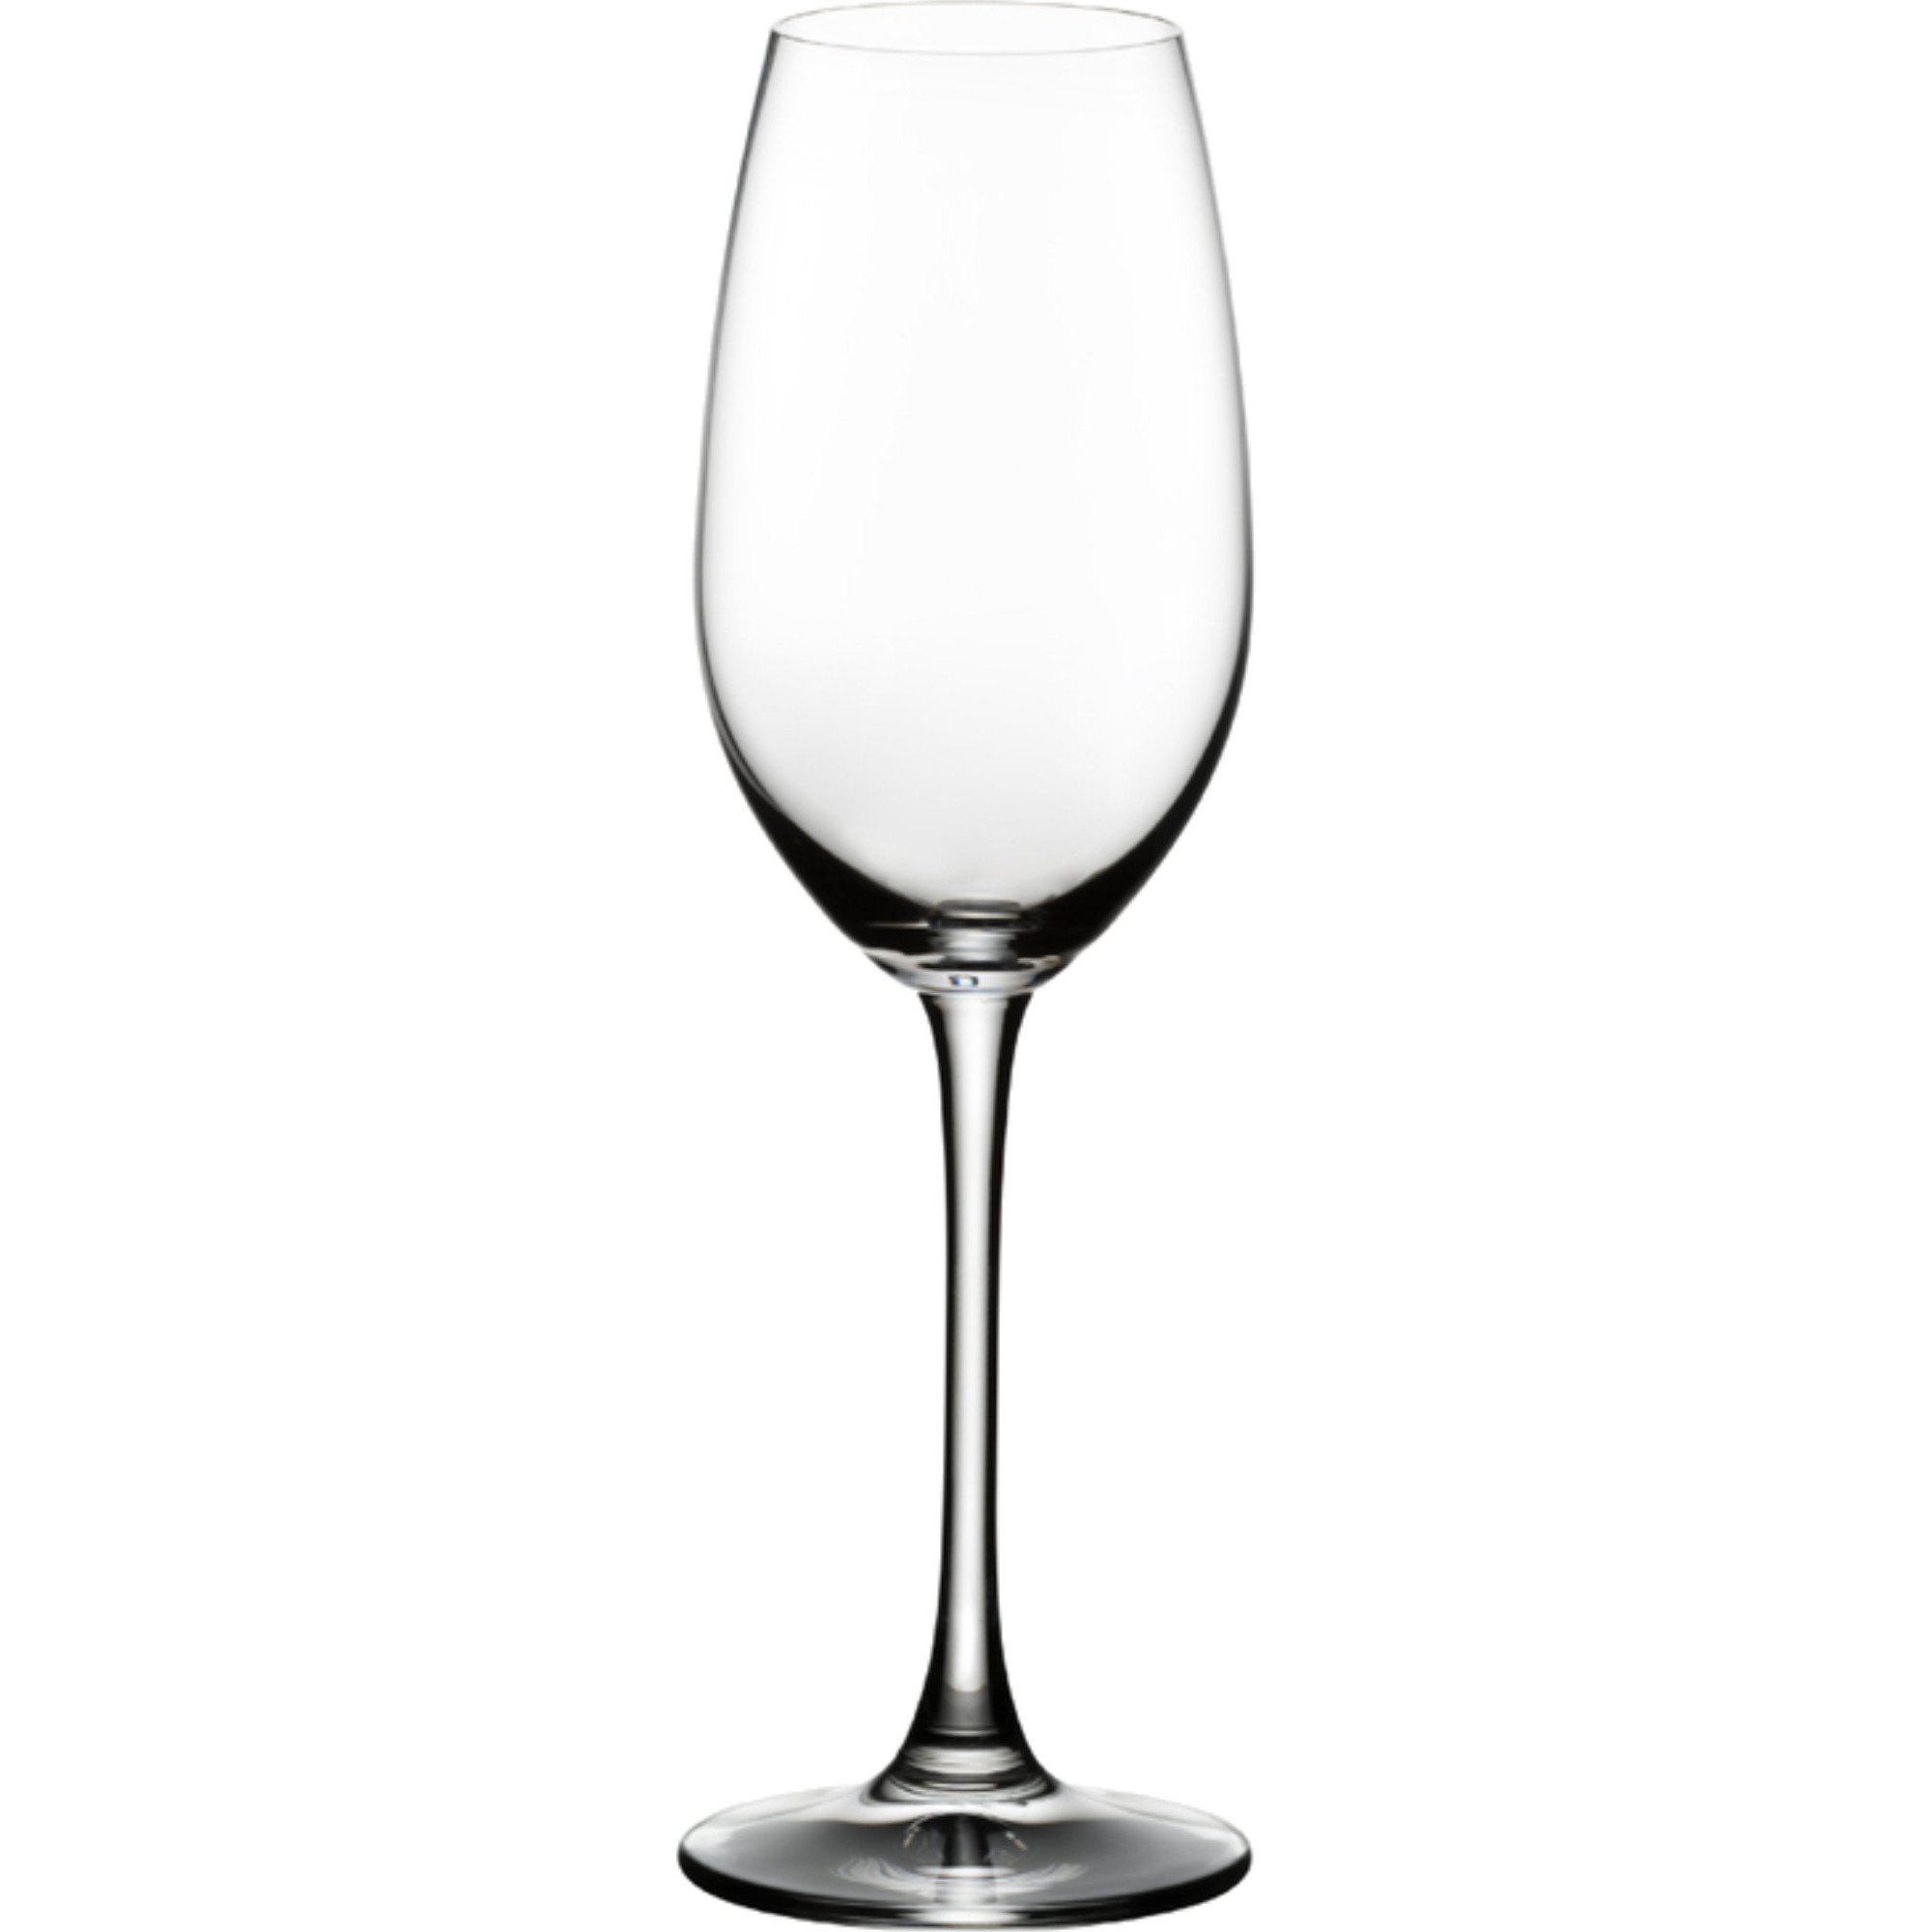 Riedel Ouverture Champagneglas 26 cl 2-pack